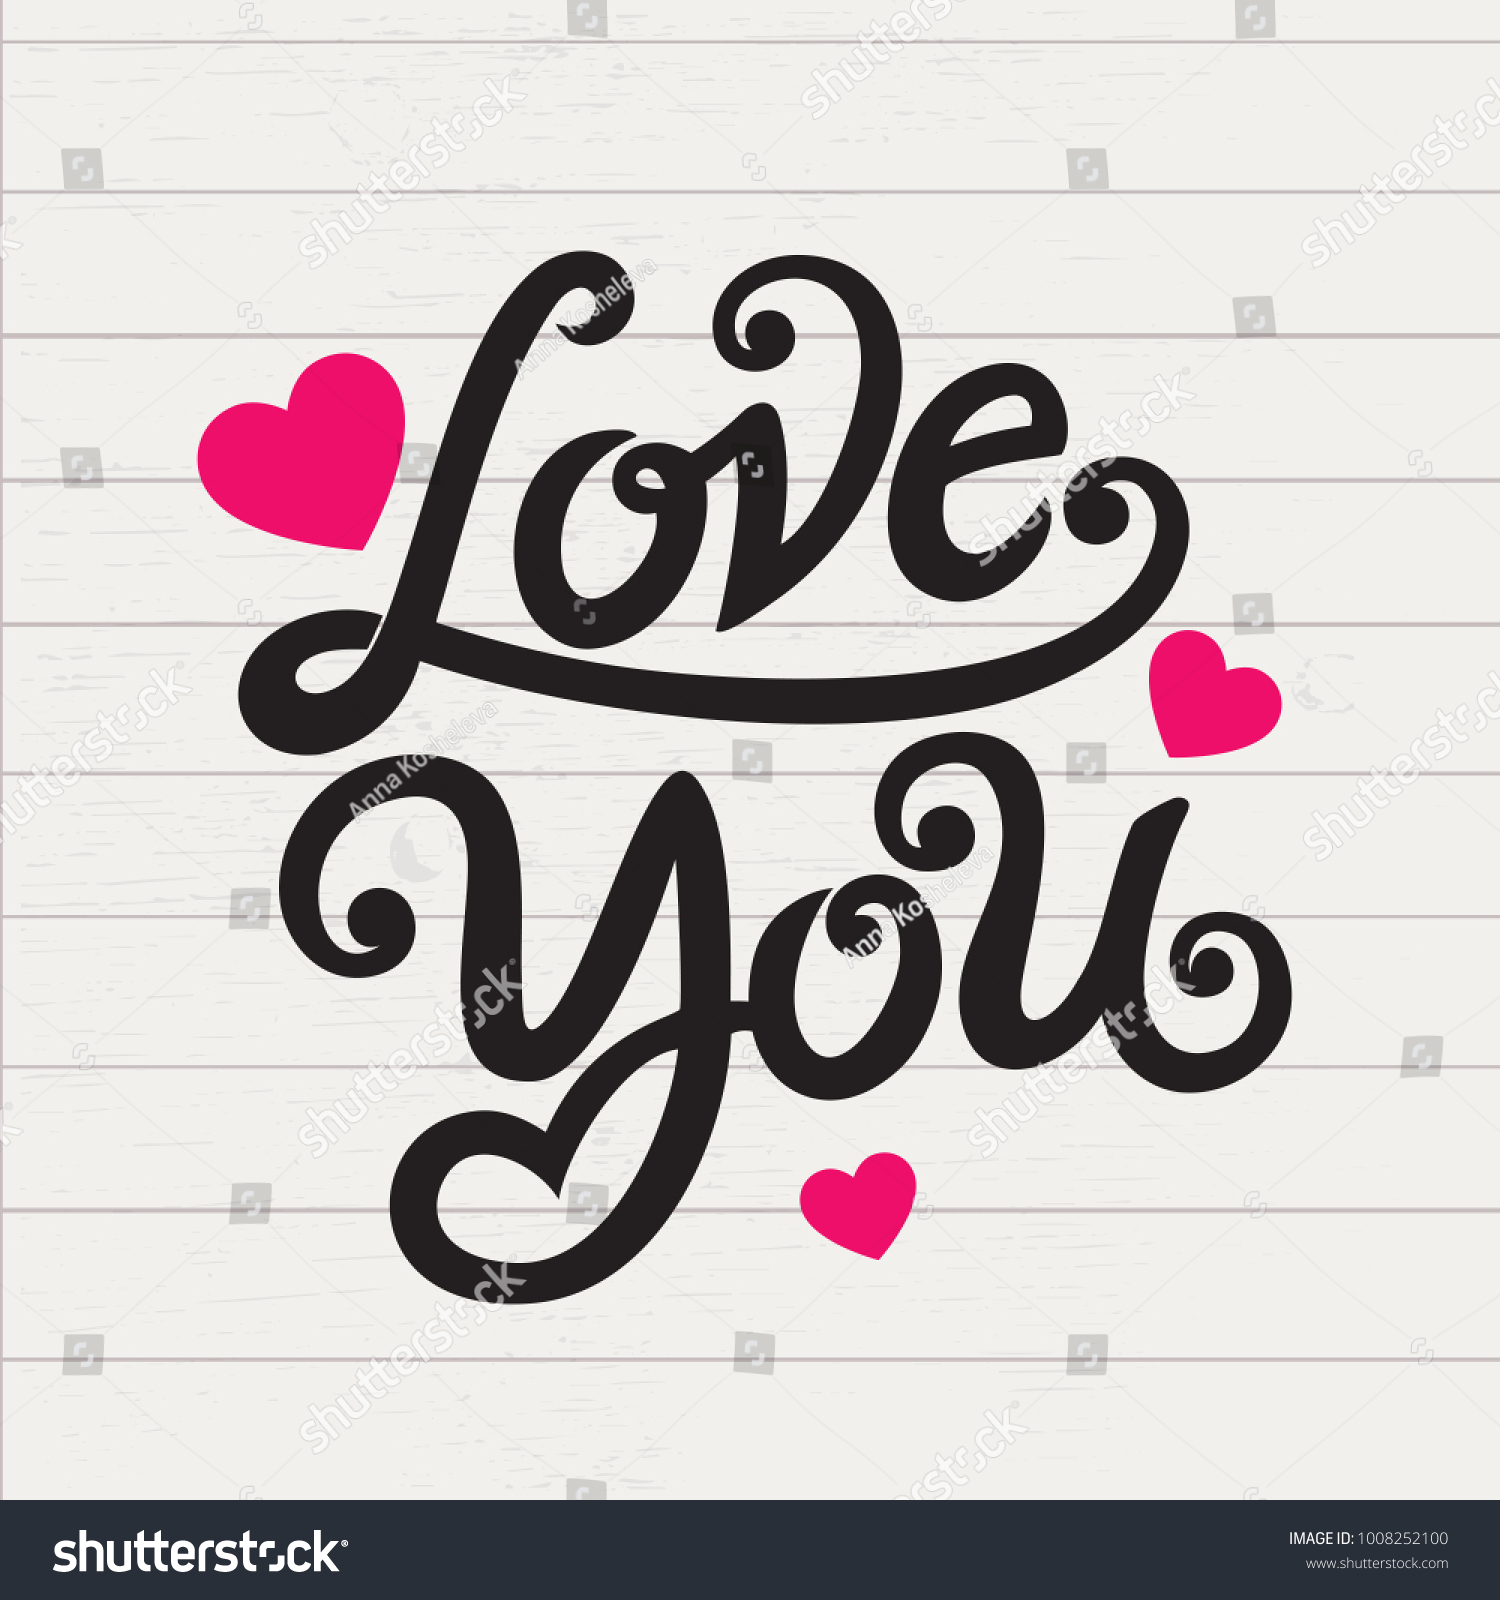 Love You Typography Vector Design Greeting Stock Photo Photo